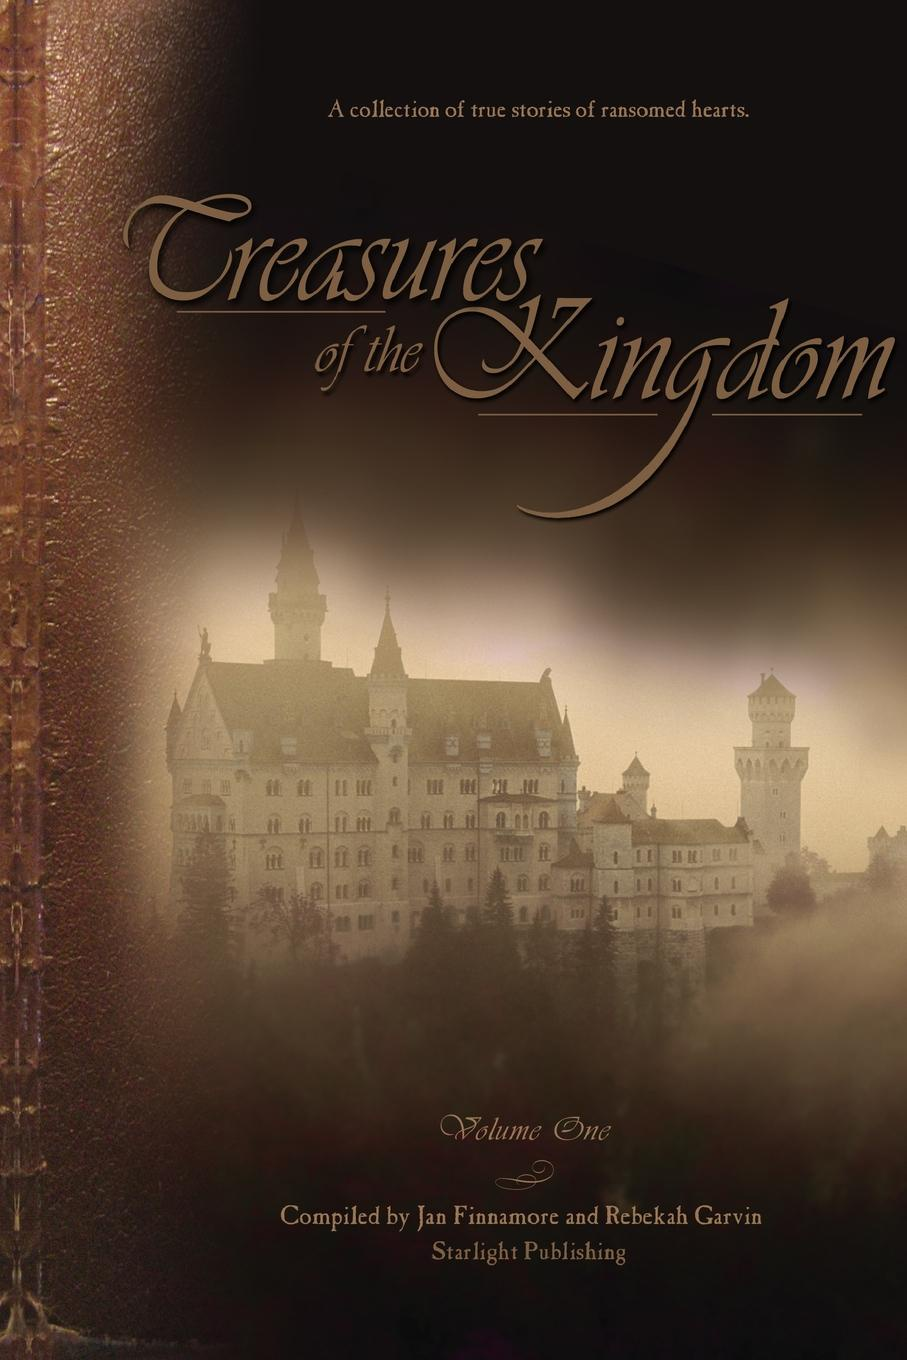 Rebekah Garvin, Jan Finnamore Treasures of the Kingdom, Vol. 1 dave godin s deep soul treasures taken from the vaults volume 1